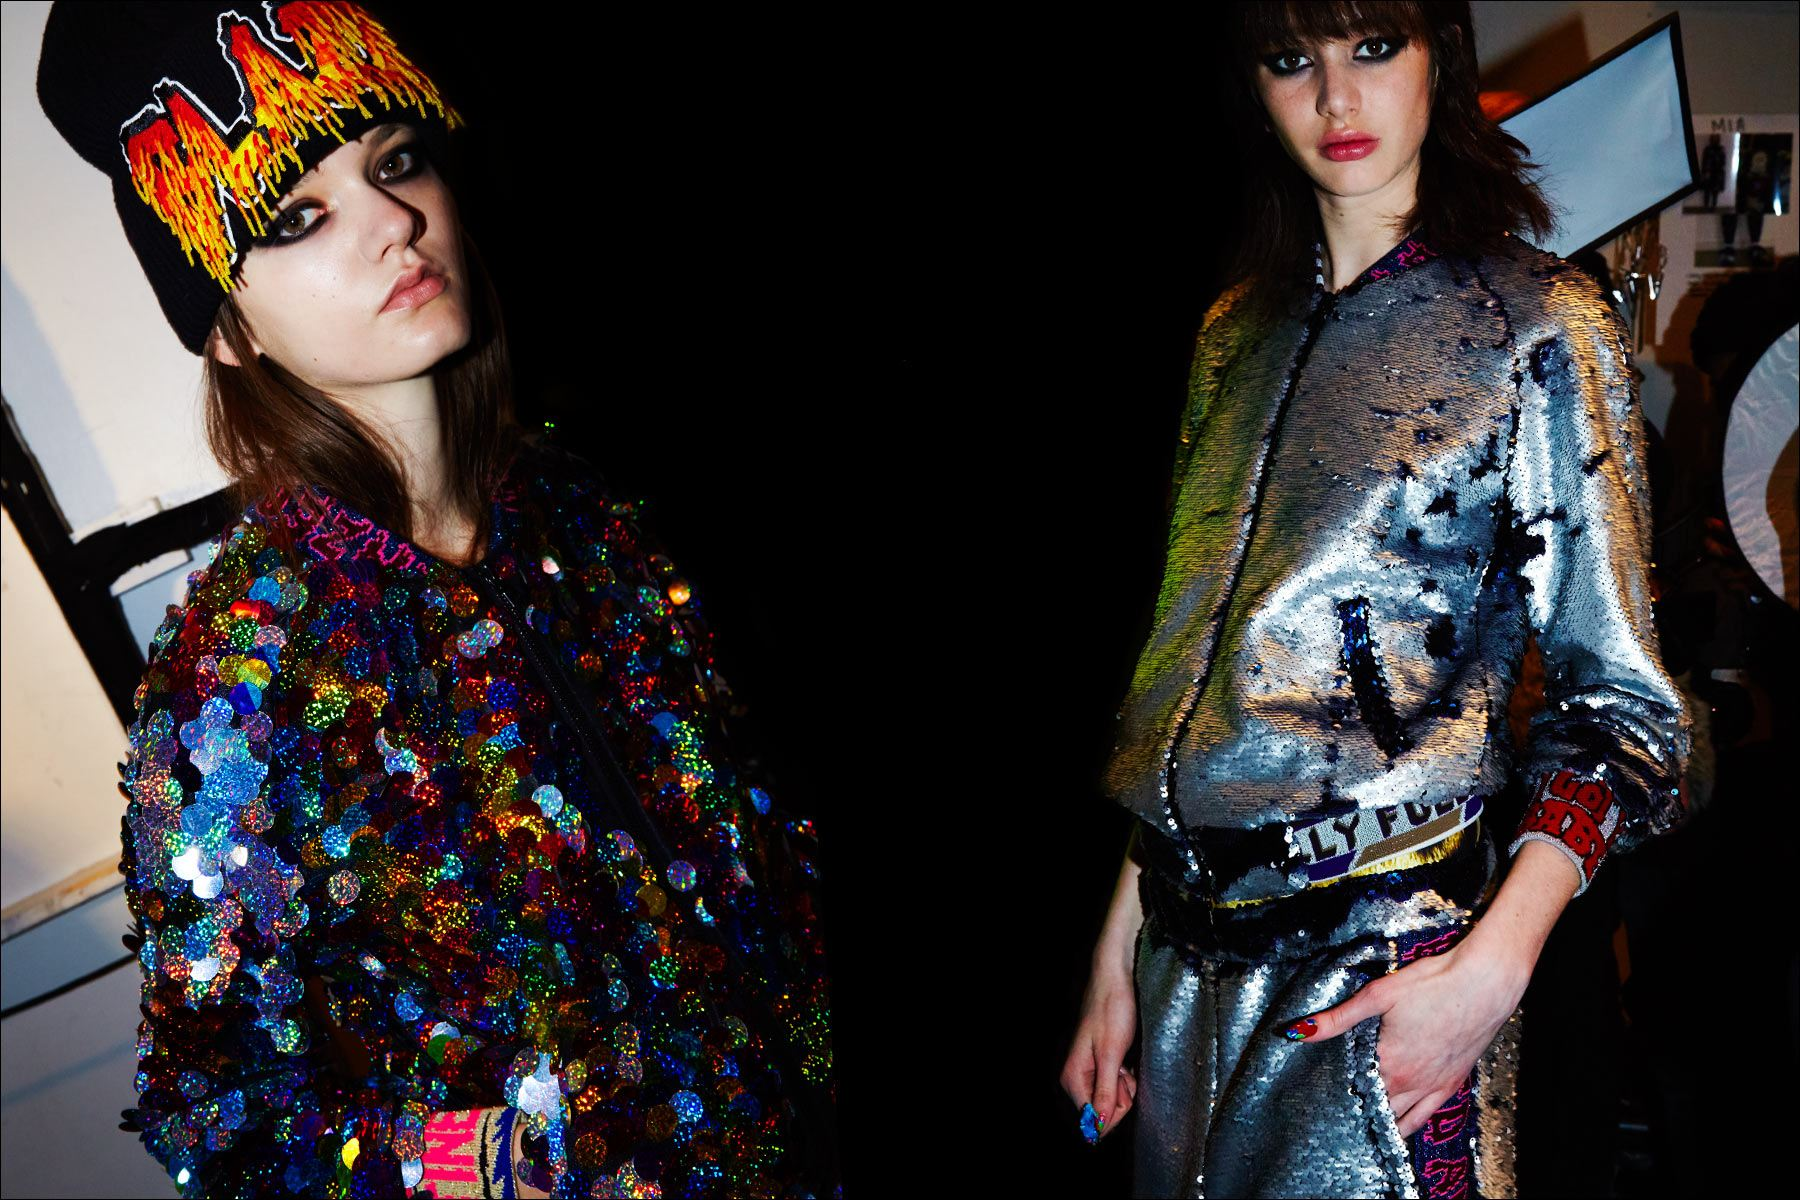 Models Alina Honcharuk & Karime Bribiesca photographed in sequins, backstage at Libertine F/W17. Photographed by Alexander Thompson for Ponyboy magazine NY.